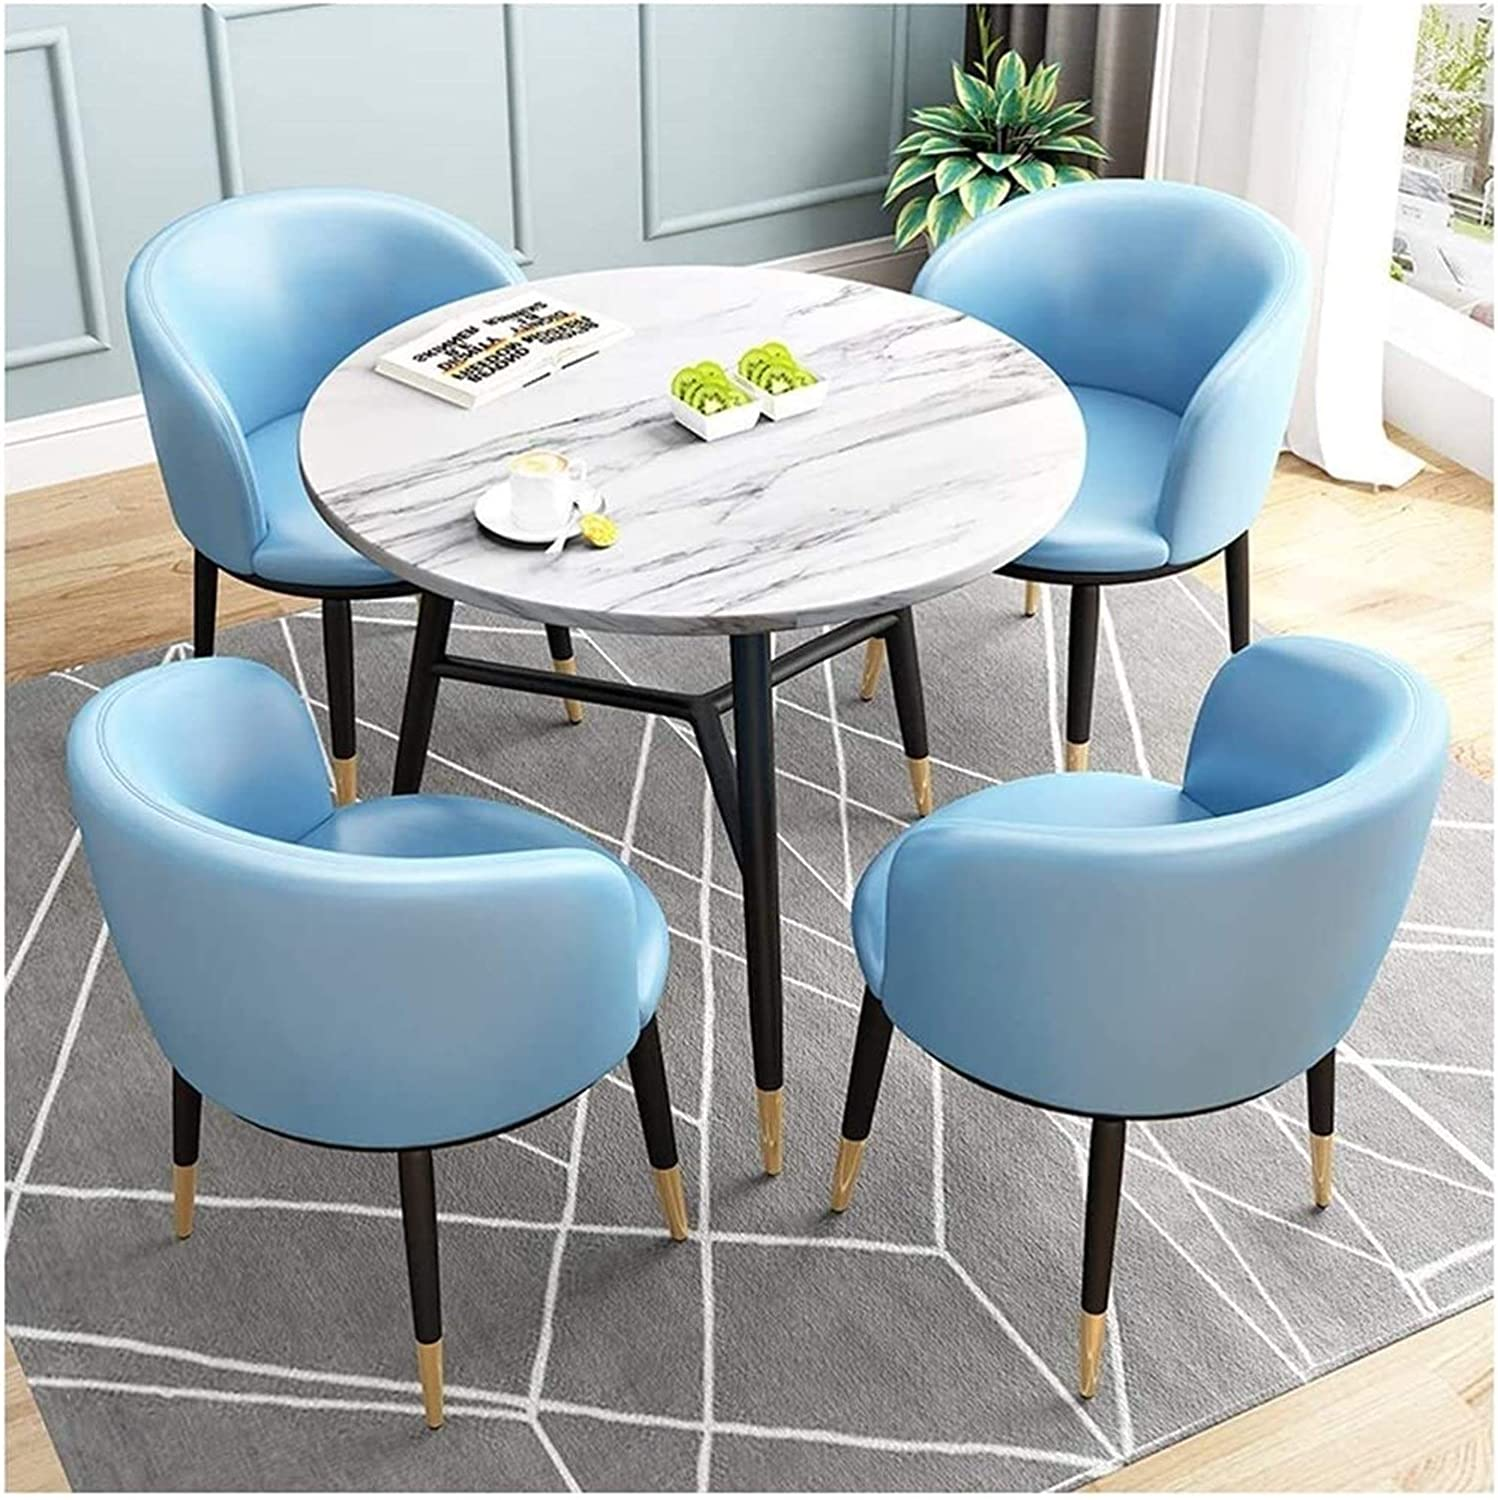 Round ! Super beauty product restock quality top! Dining Table and Chair 2021 spring summer new Set Combinat